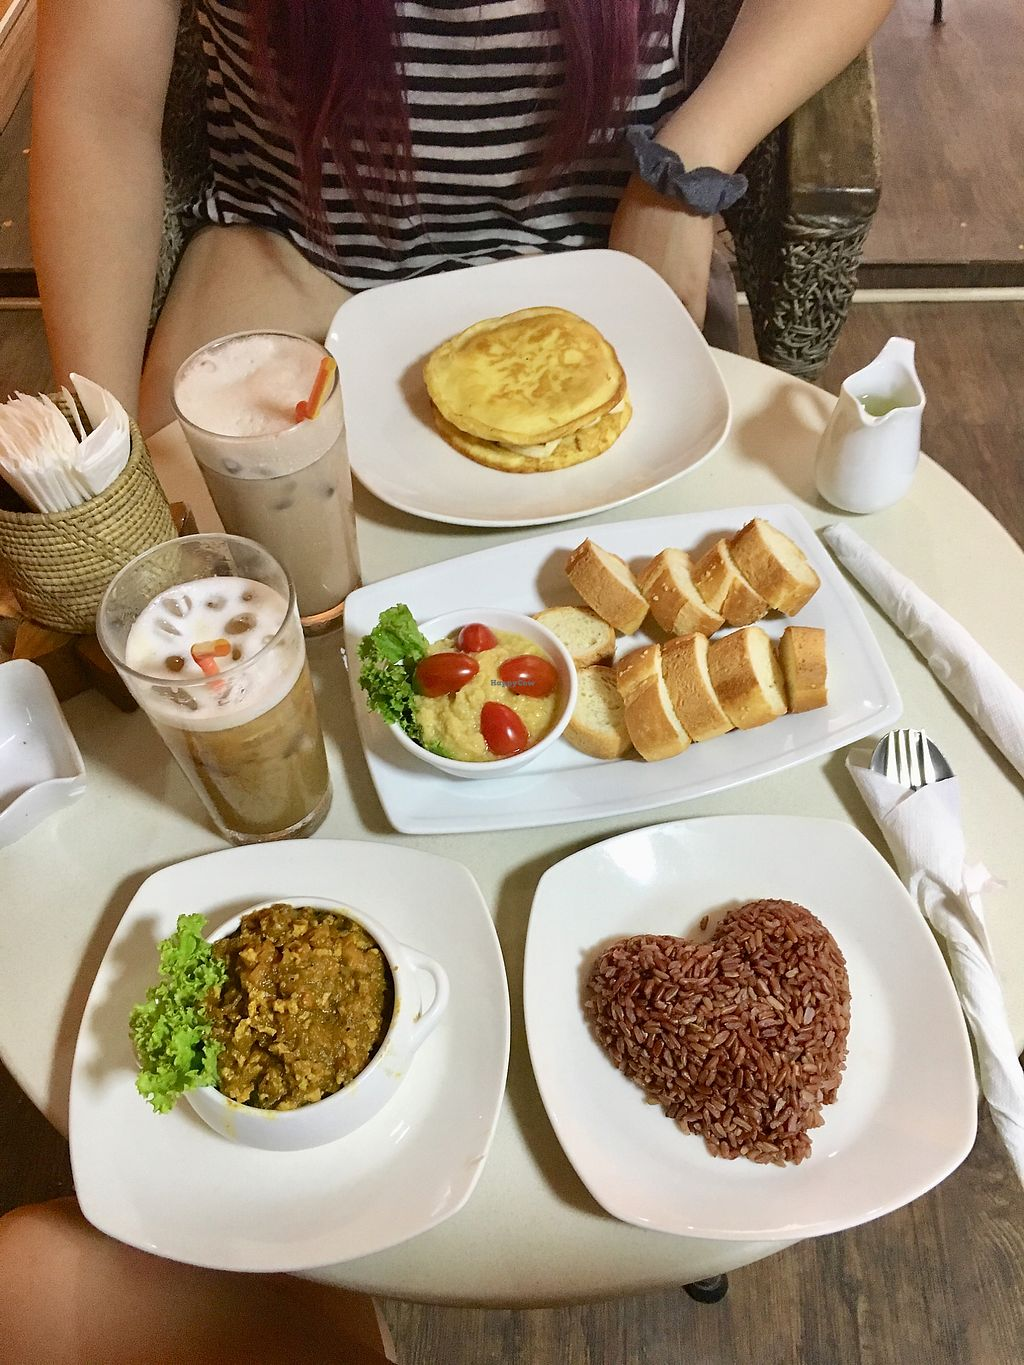 """Photo of Cafe Soleil  by <a href=""""/members/profile/CamilaSilvaL"""">CamilaSilvaL</a> <br/>Amok, hummus and pancakes  <br/> February 1, 2018  - <a href='/contact/abuse/image/33811/353543'>Report</a>"""